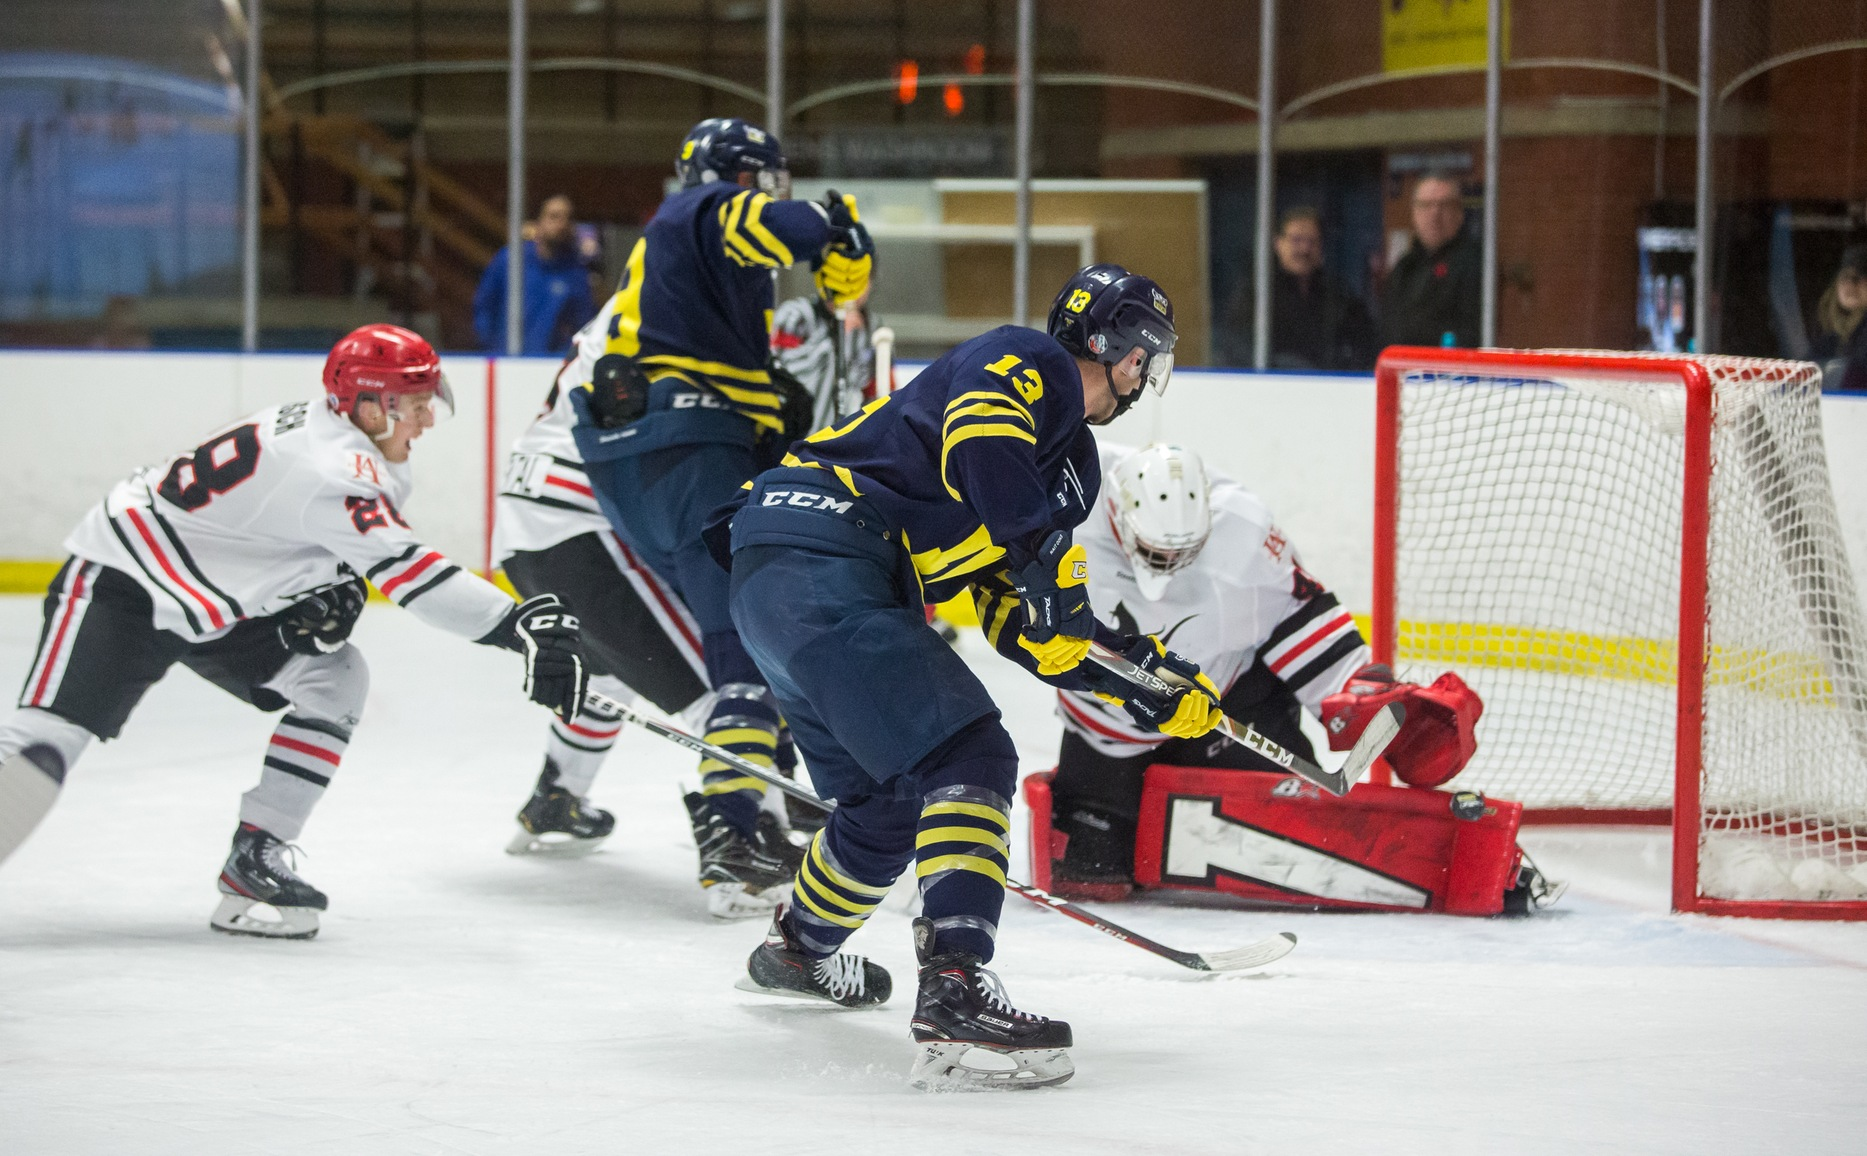 Ooks erase early deficit to beat Vikings